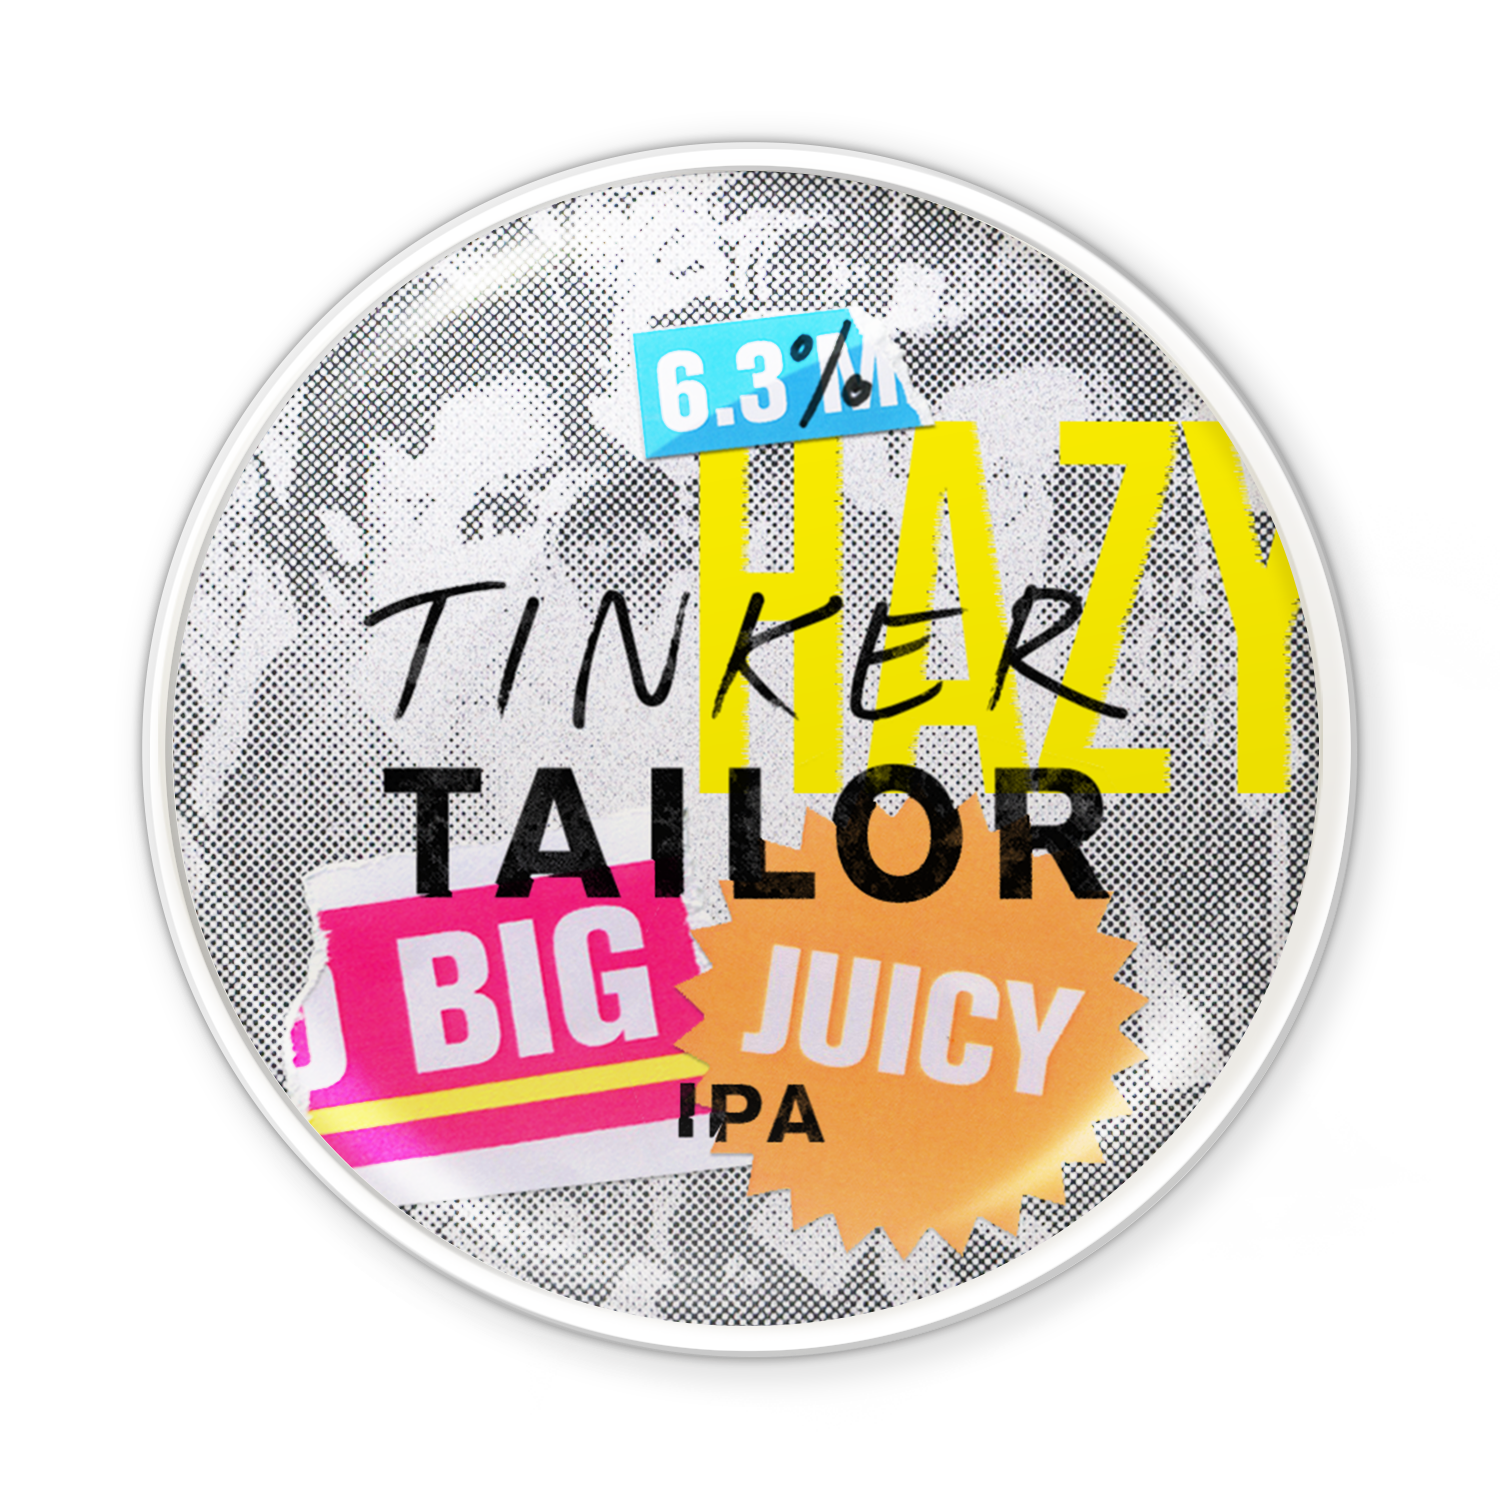 Big Juicy IPA - Tinker's dreaming of hazy, east coast summer days. Our IPA's tropical heart just got even more intense with this big, bright juicy cocktail. An unfiltered, unrivalled hit of peaches and apricot. A fruity, fresh flavour bomb.Pair with grilled seasonal greens like asparagus.6.3%Read reviews